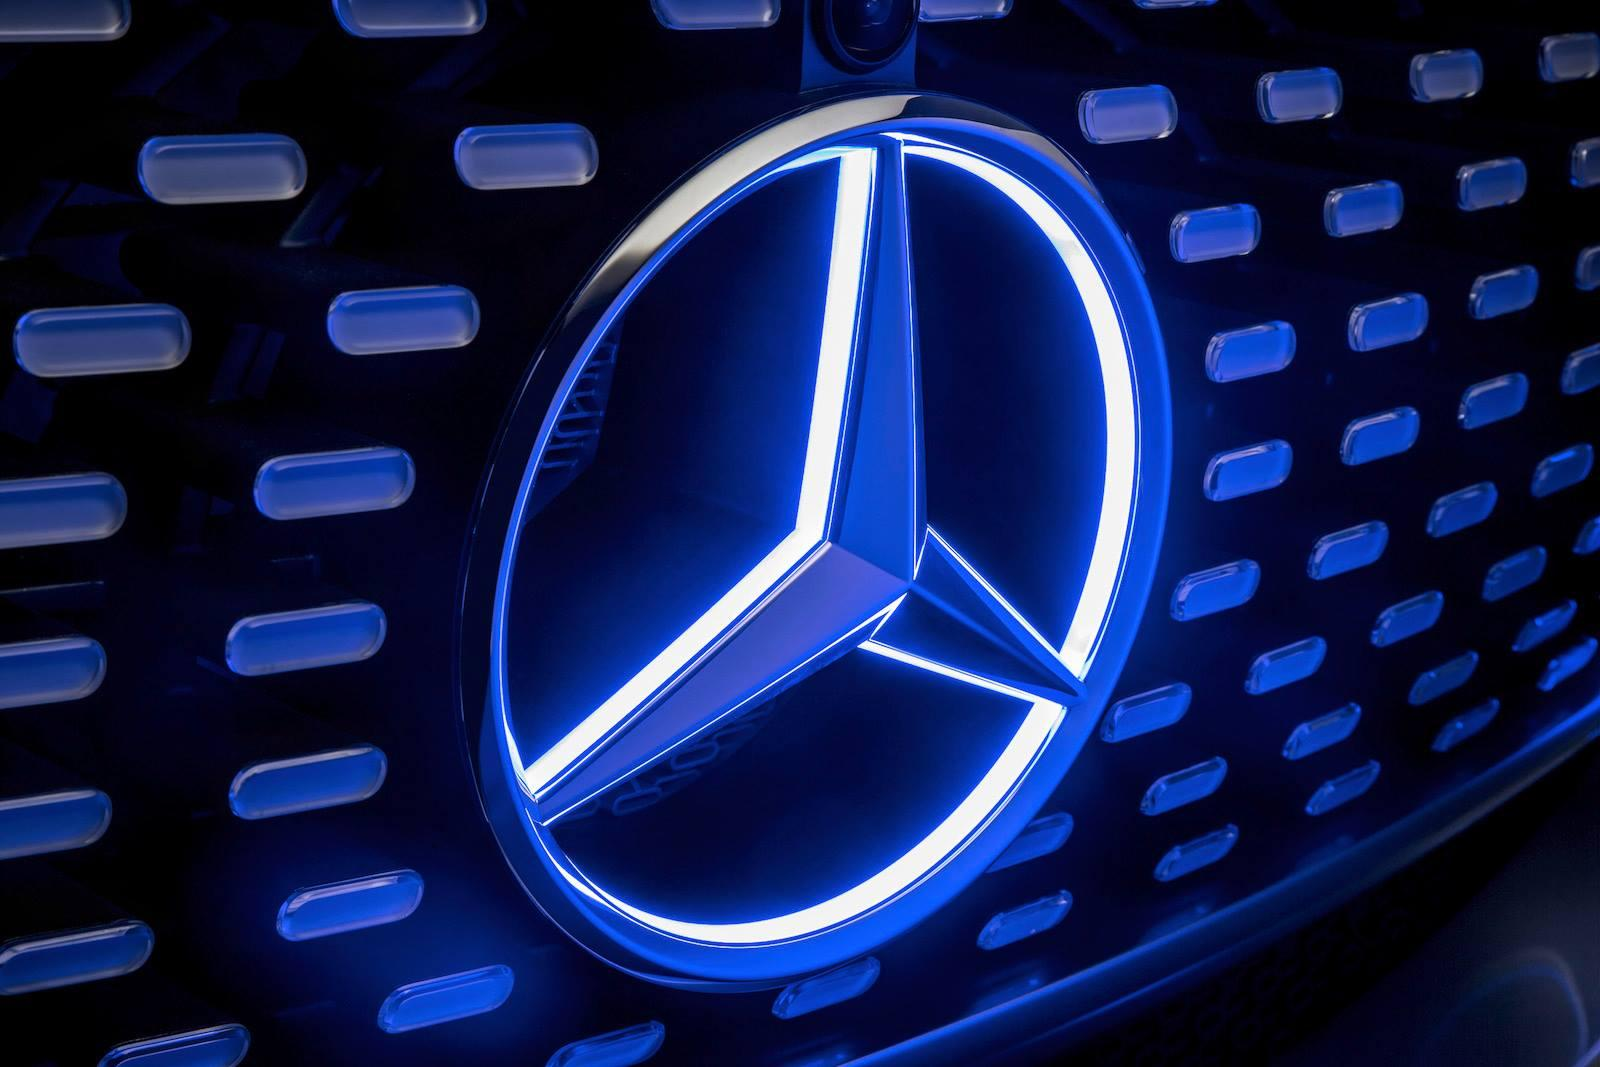 Animated Wallpapers Hd 1080p More Teasers Released For Mercedes Concept Debuting At